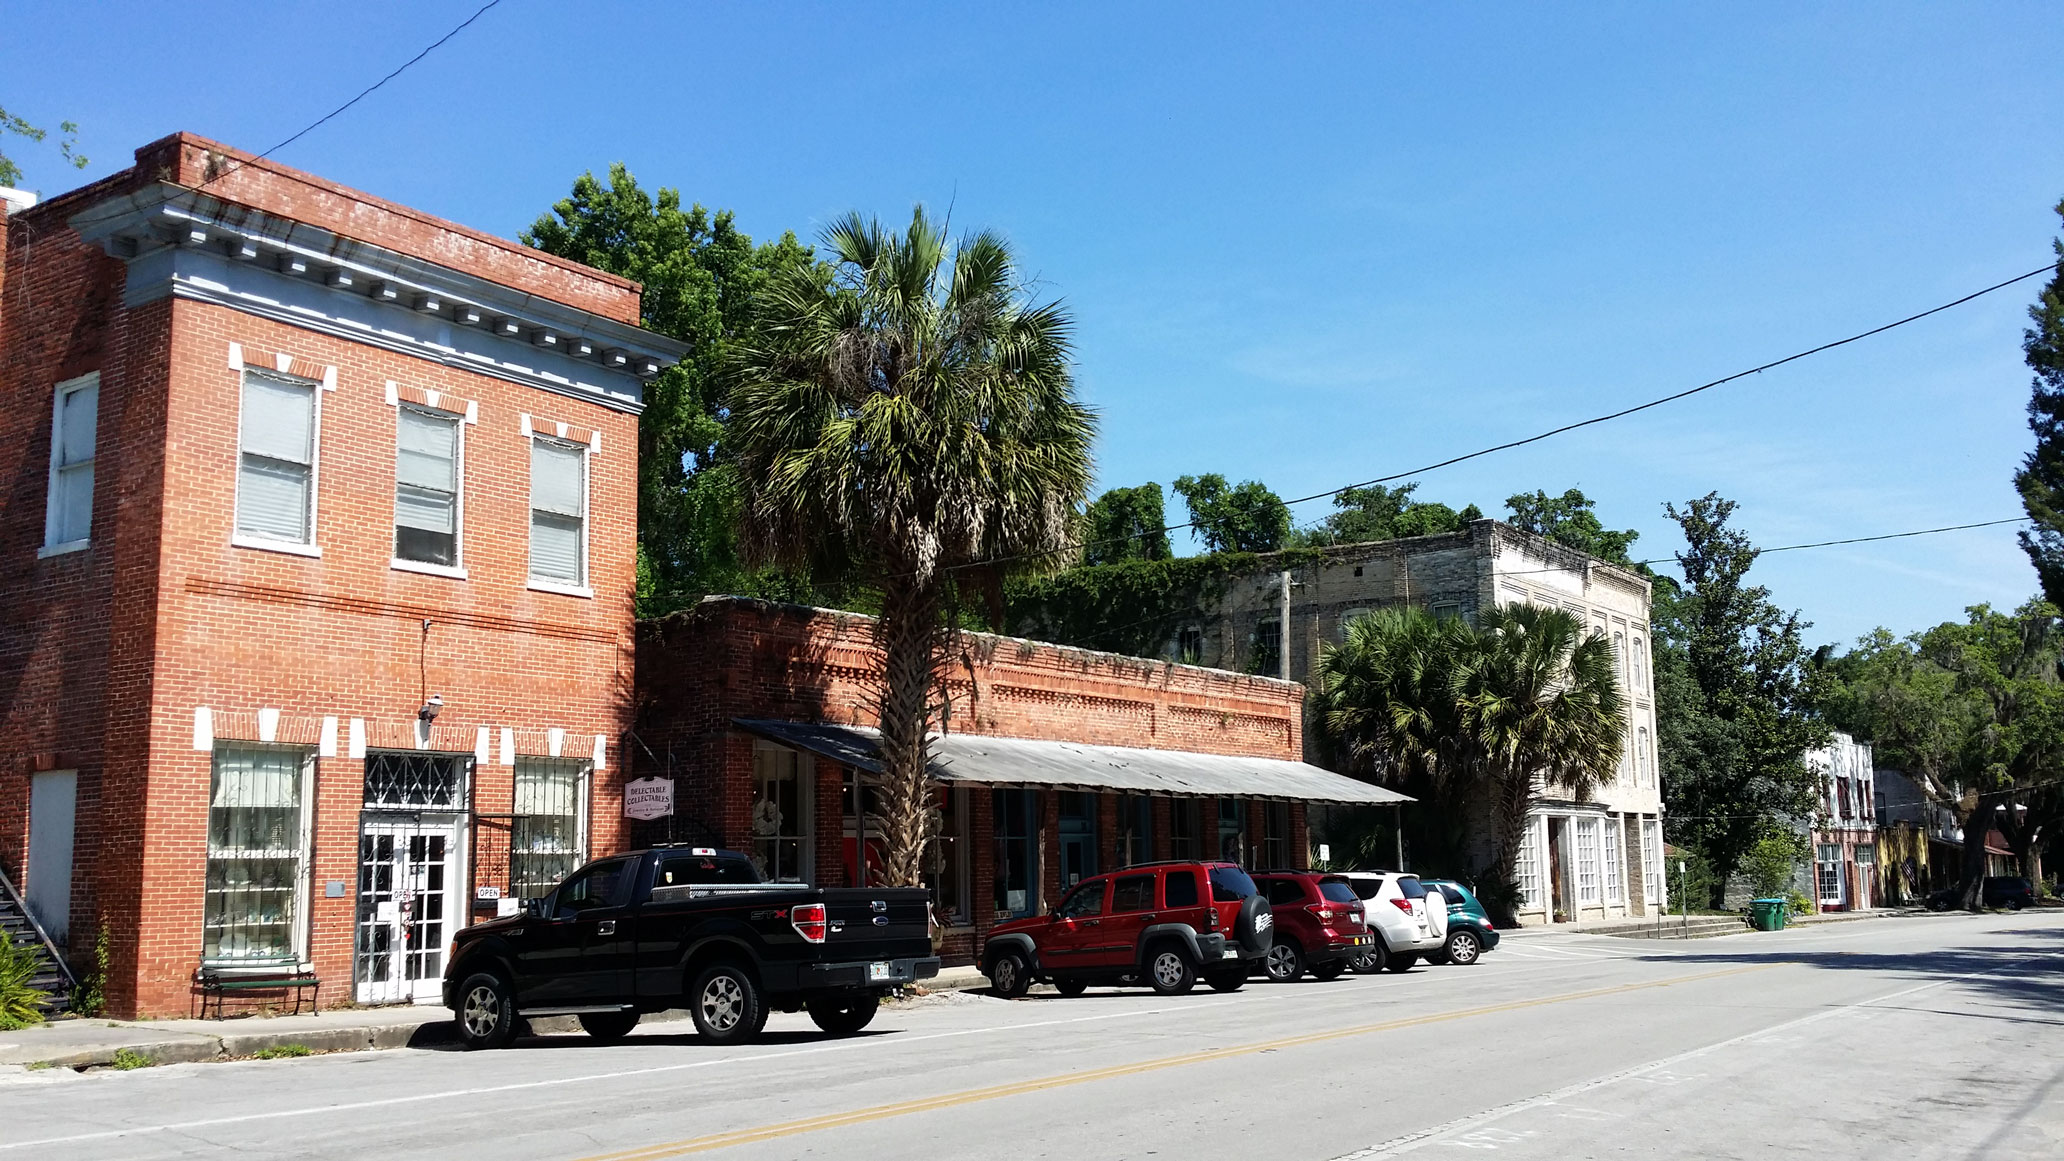 Micanopy Historic District